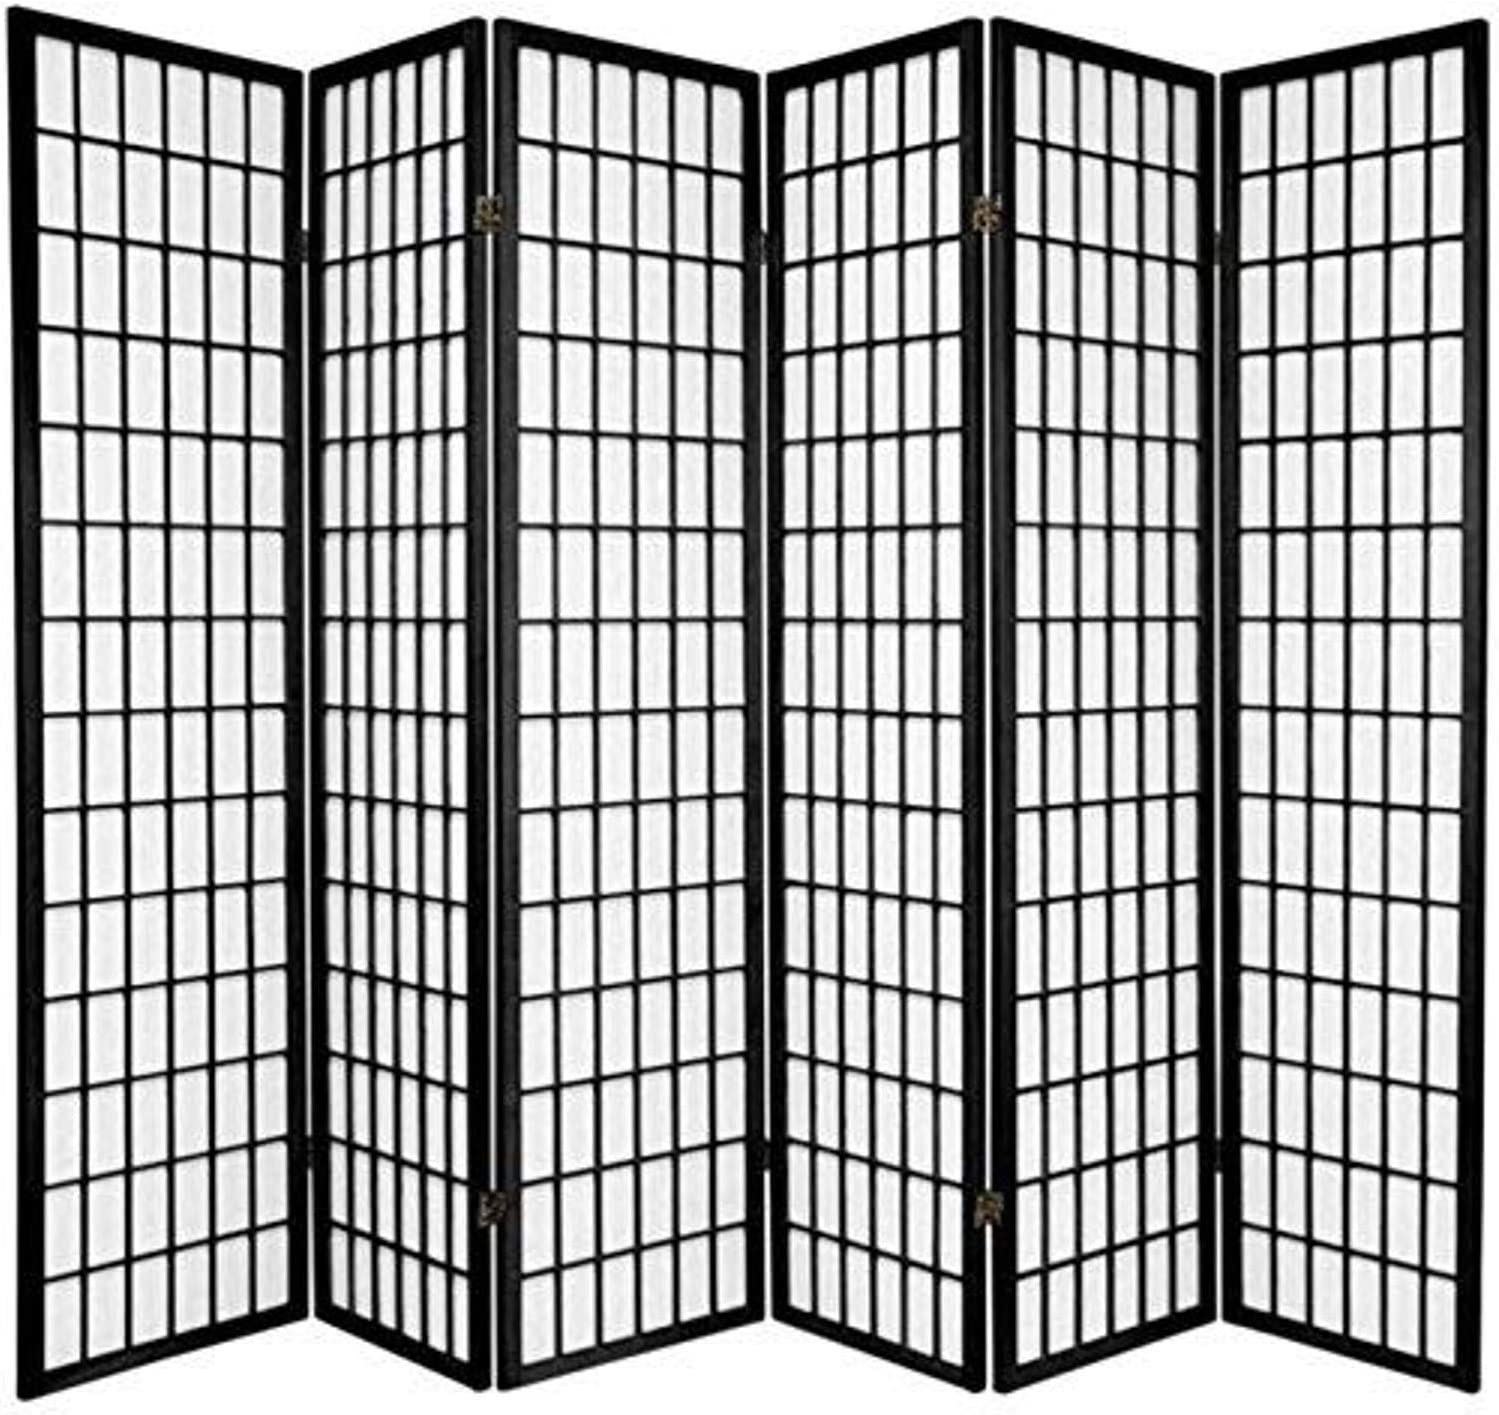 Oriental Furniture 6 ft. Tall Window Pane Shoji Screen - Black - 6 Panels